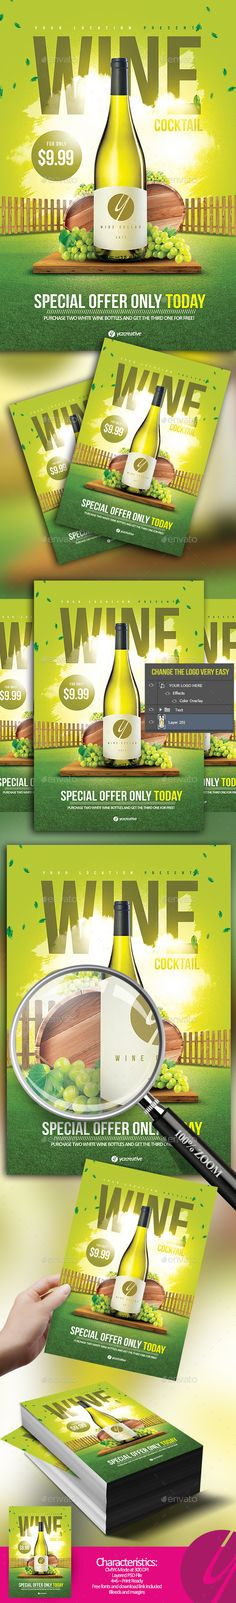 White Wine Cocktail Flyer — Photoshop PSD #wine flyer #cocktail • Download ➝ https://graphicriver.net/item/white-wine-cocktail-flyer/20026724?ref=pxcr